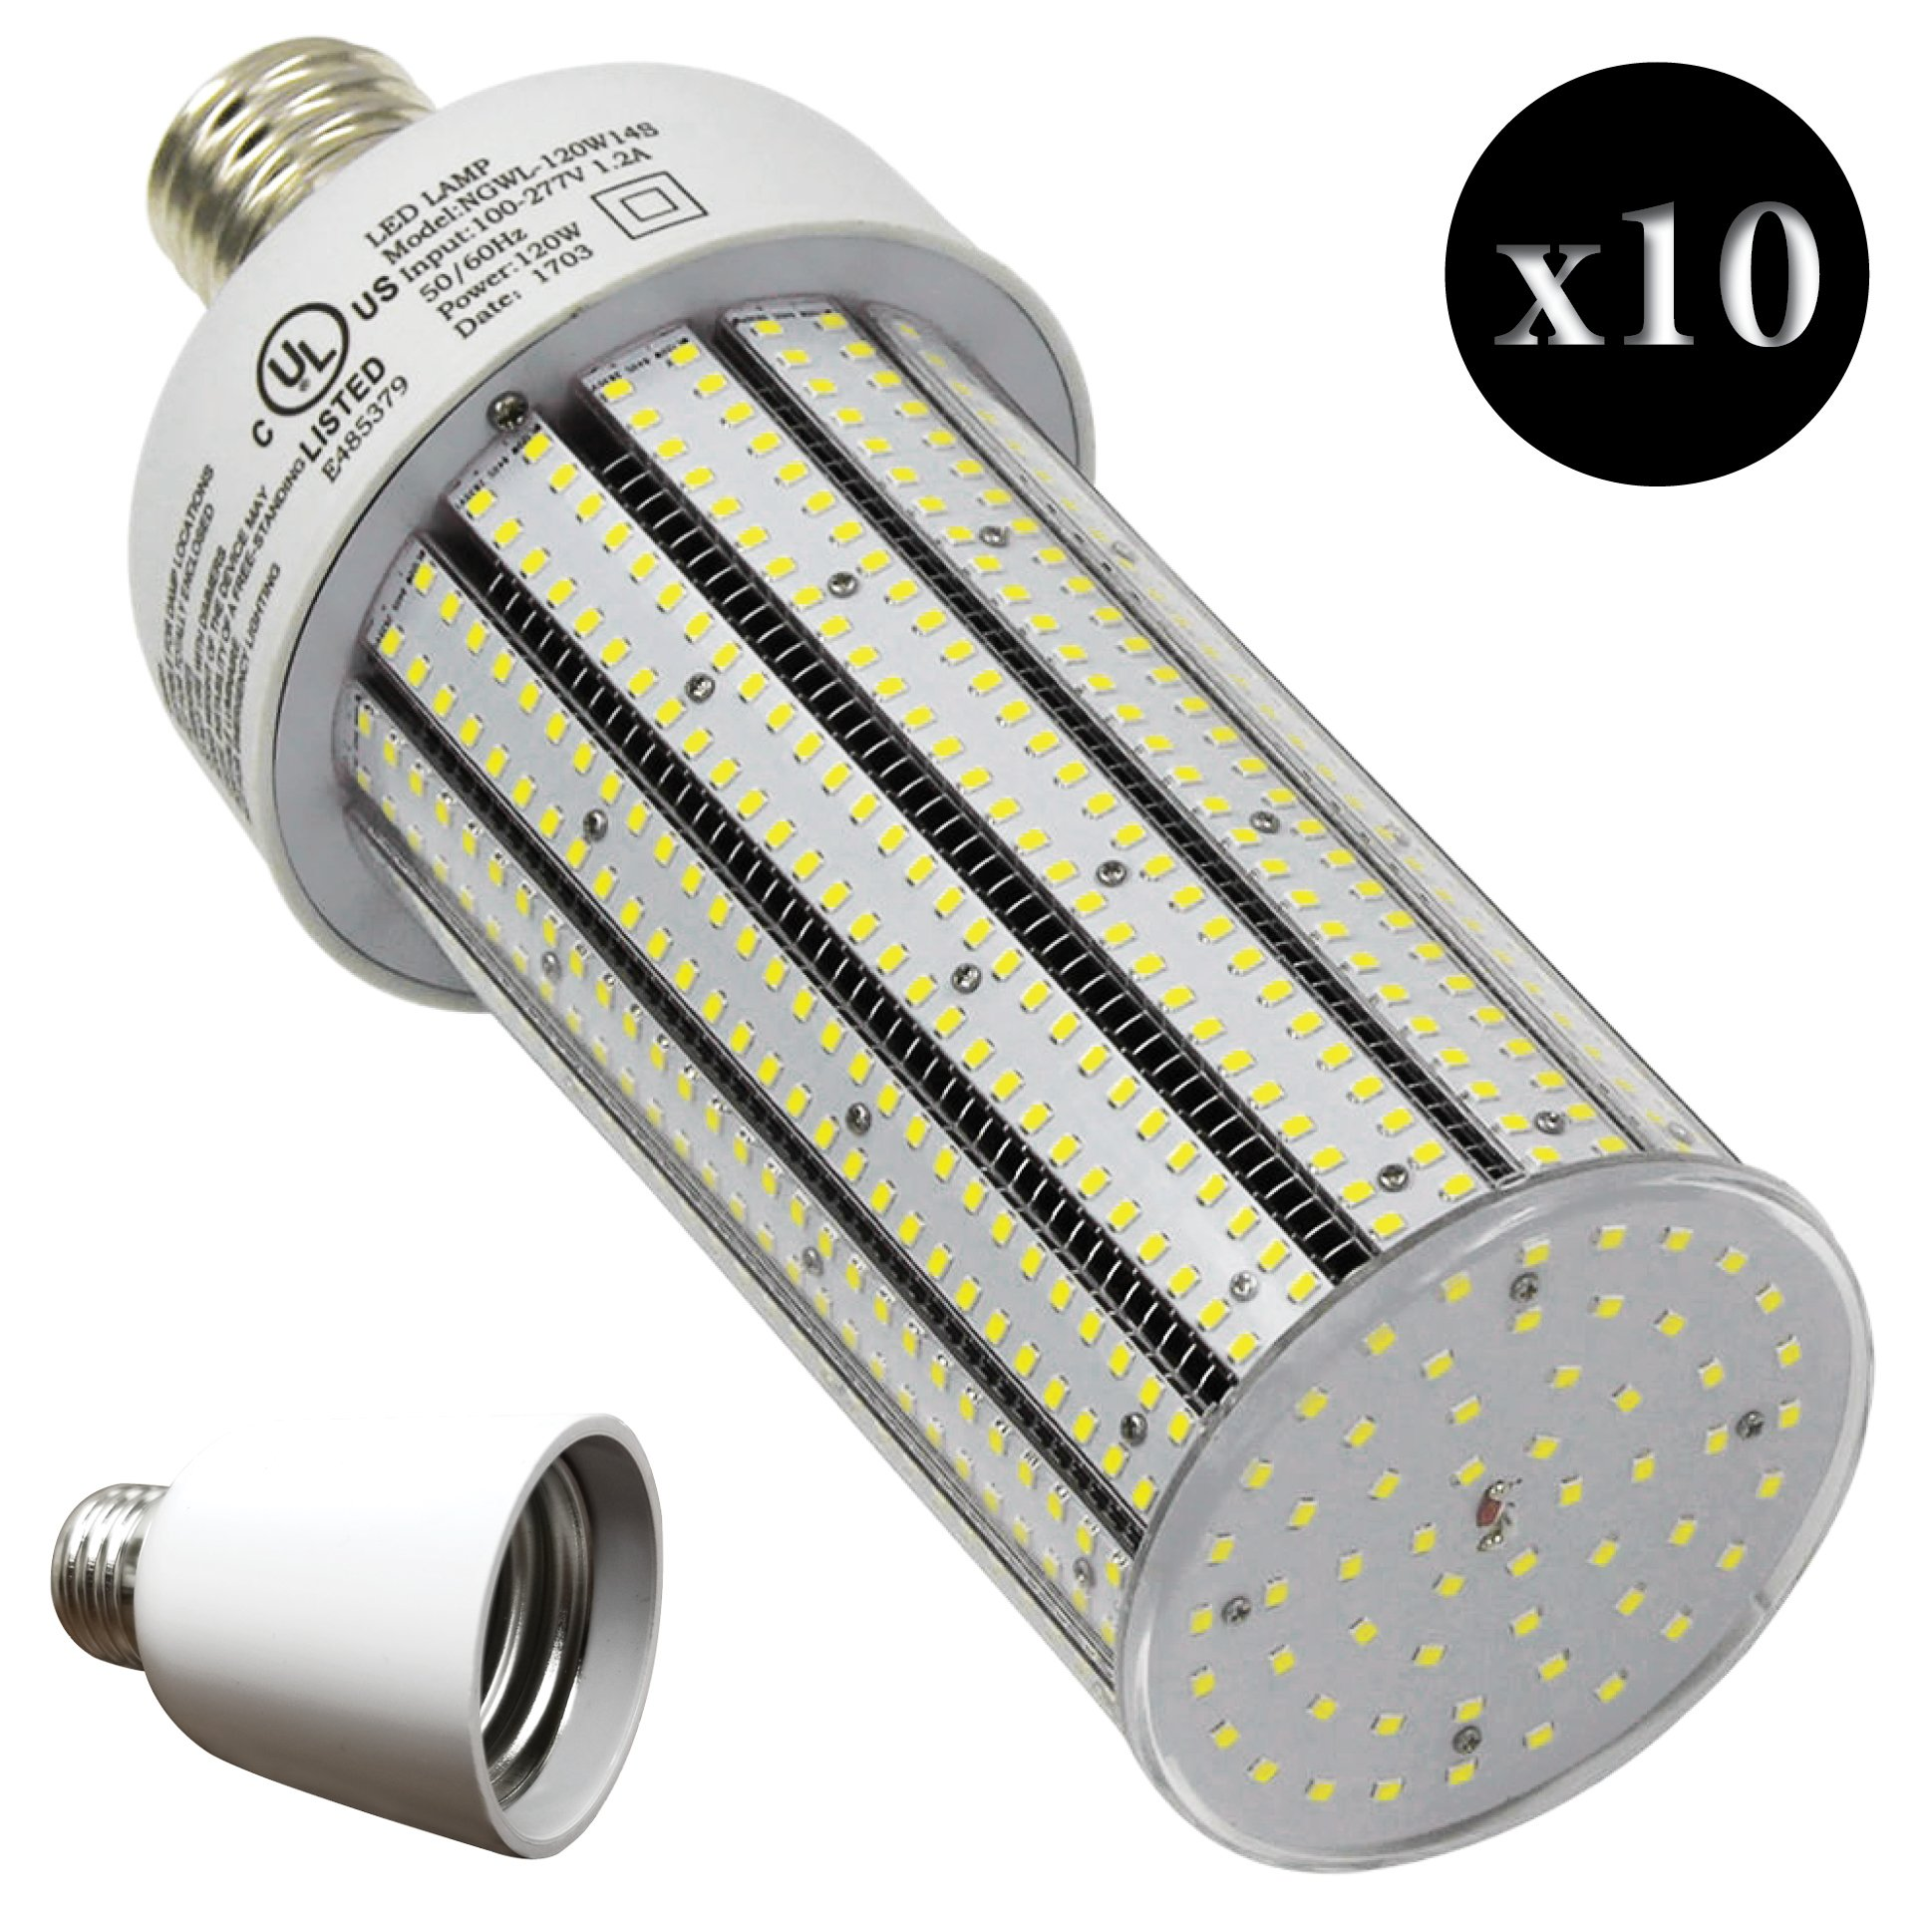 QTY 10 CC120-39 + 10 Adapters LED GARDEN LED LIGHT E39 6500K WHITE 120W (EQUIVALENT TO 720W)